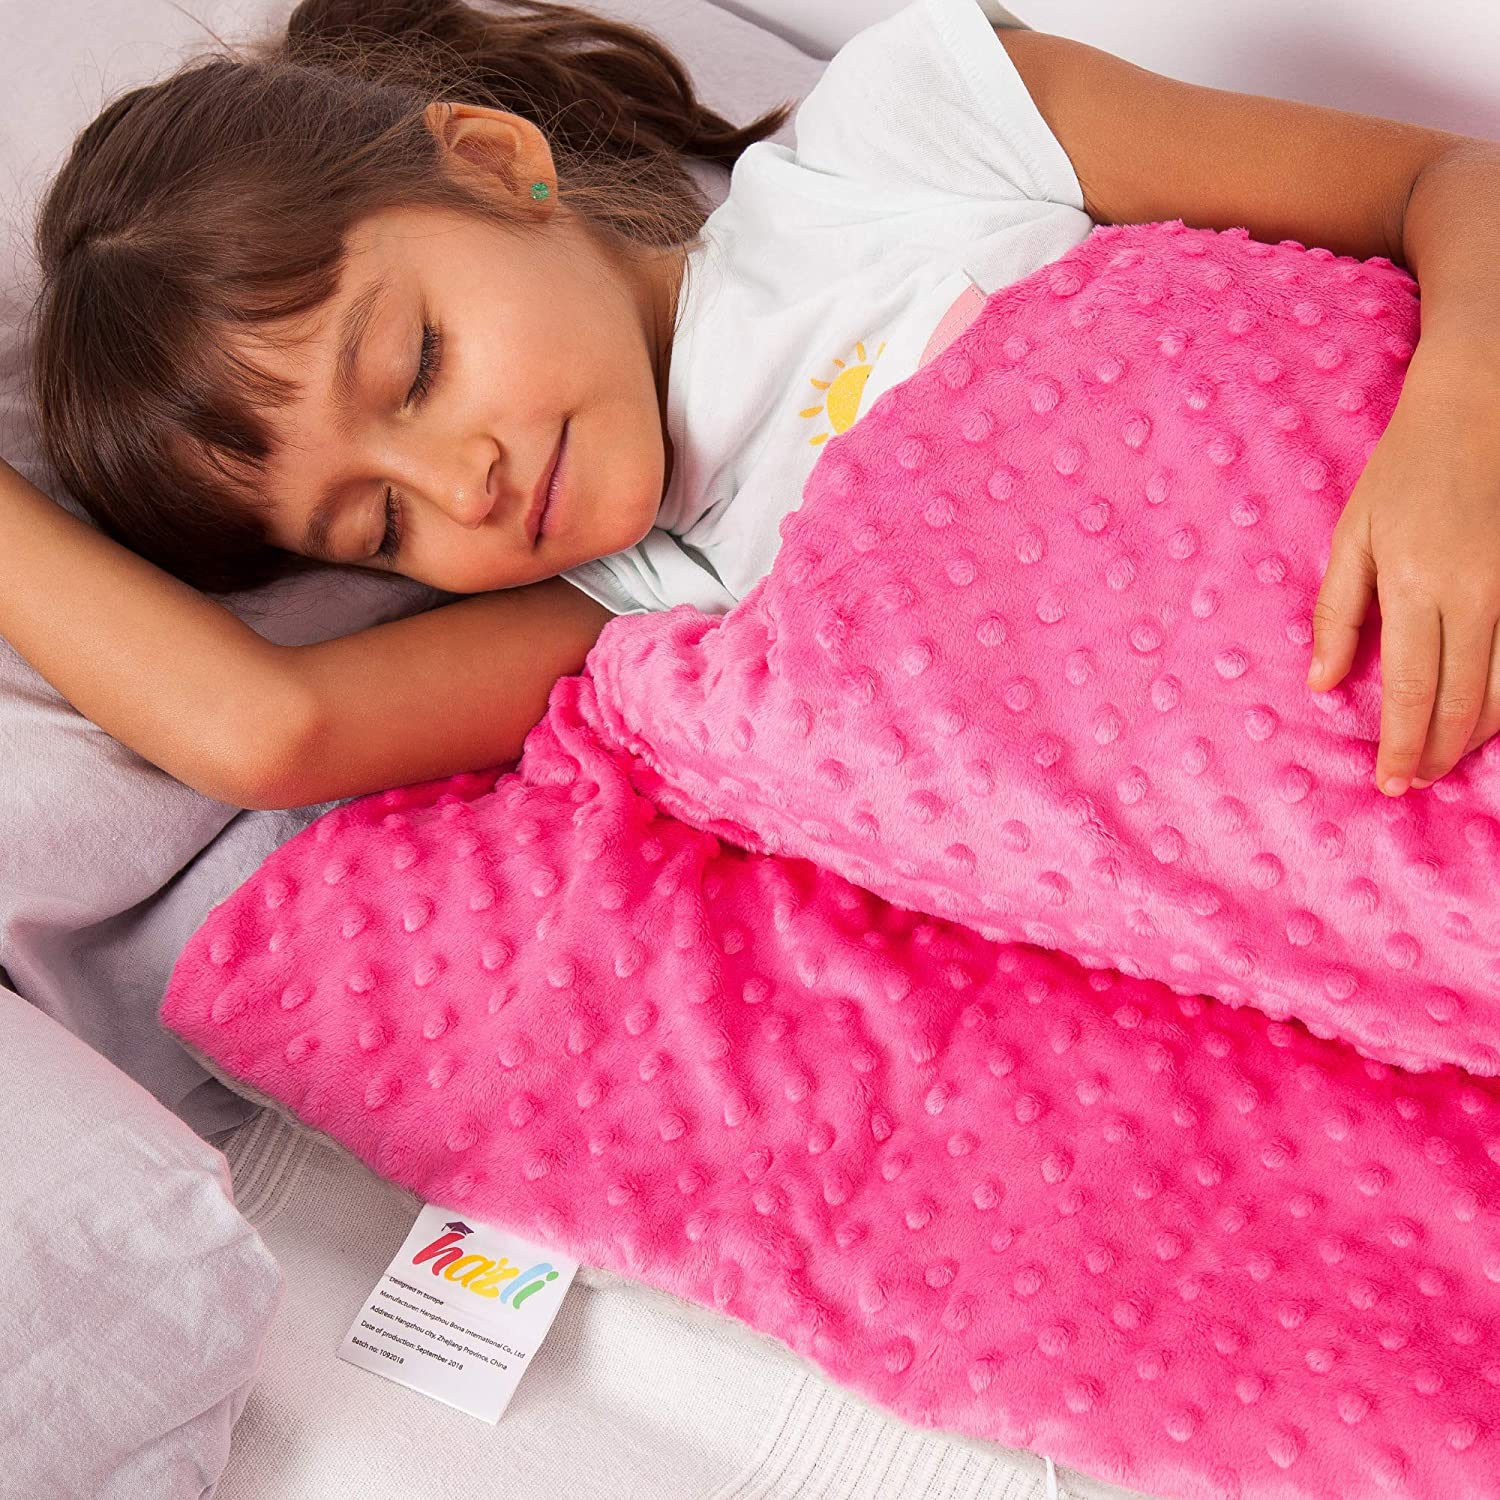 """Calming Weighted Blanket for Kids - Children Heavy Blanket for Sleeping with Minky Cover - Kid Comfort Sensory Blankets Premium Quality for Boys and Girls (Pink, 5 Lbs 36"""" x 48"""")"""